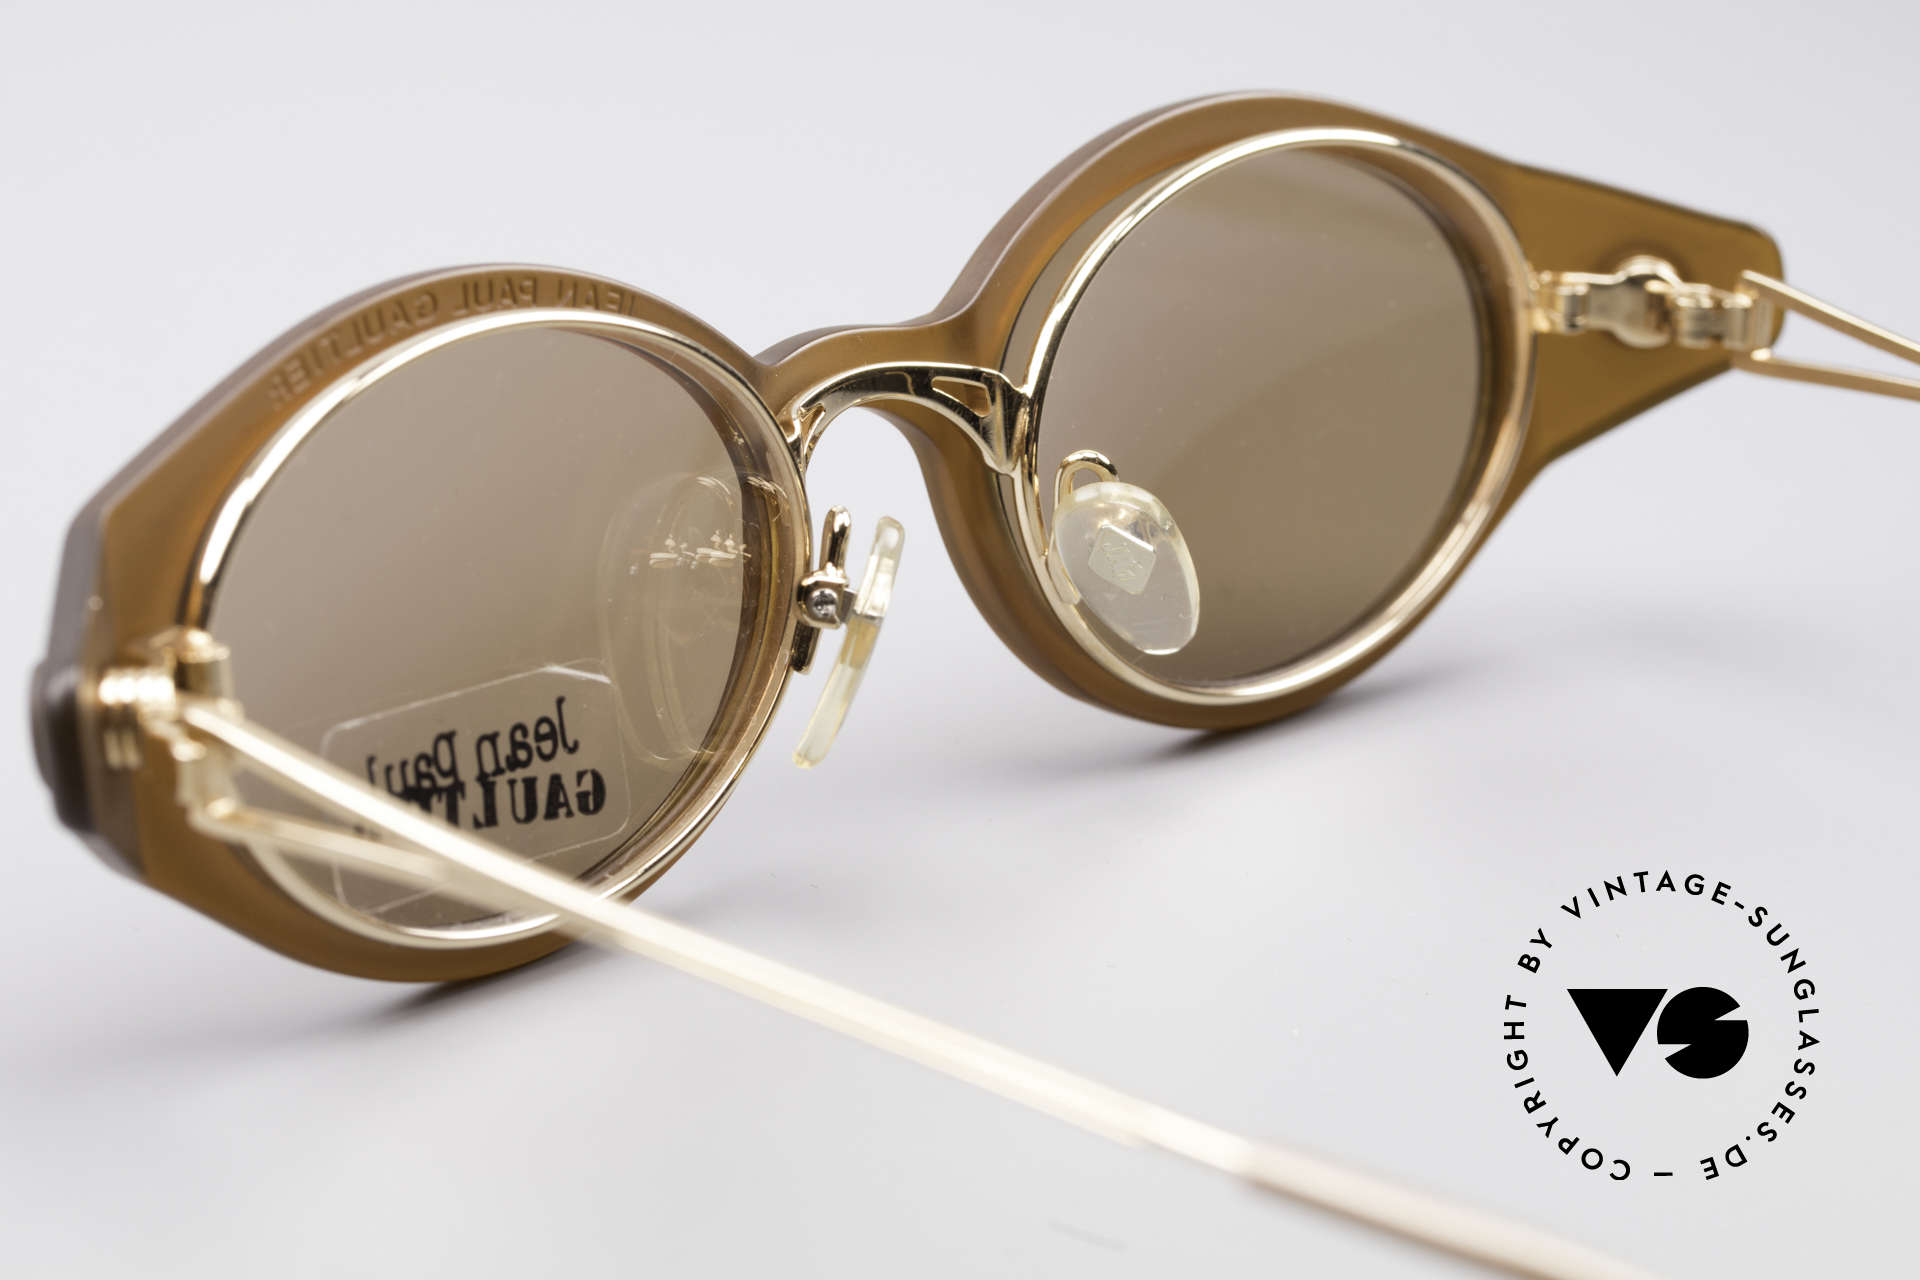 Jean Paul Gaultier 56-7202 Oval Frame With Sun Clip, unworn NOS (like all our vintage 90's designer specs), Made for Men and Women